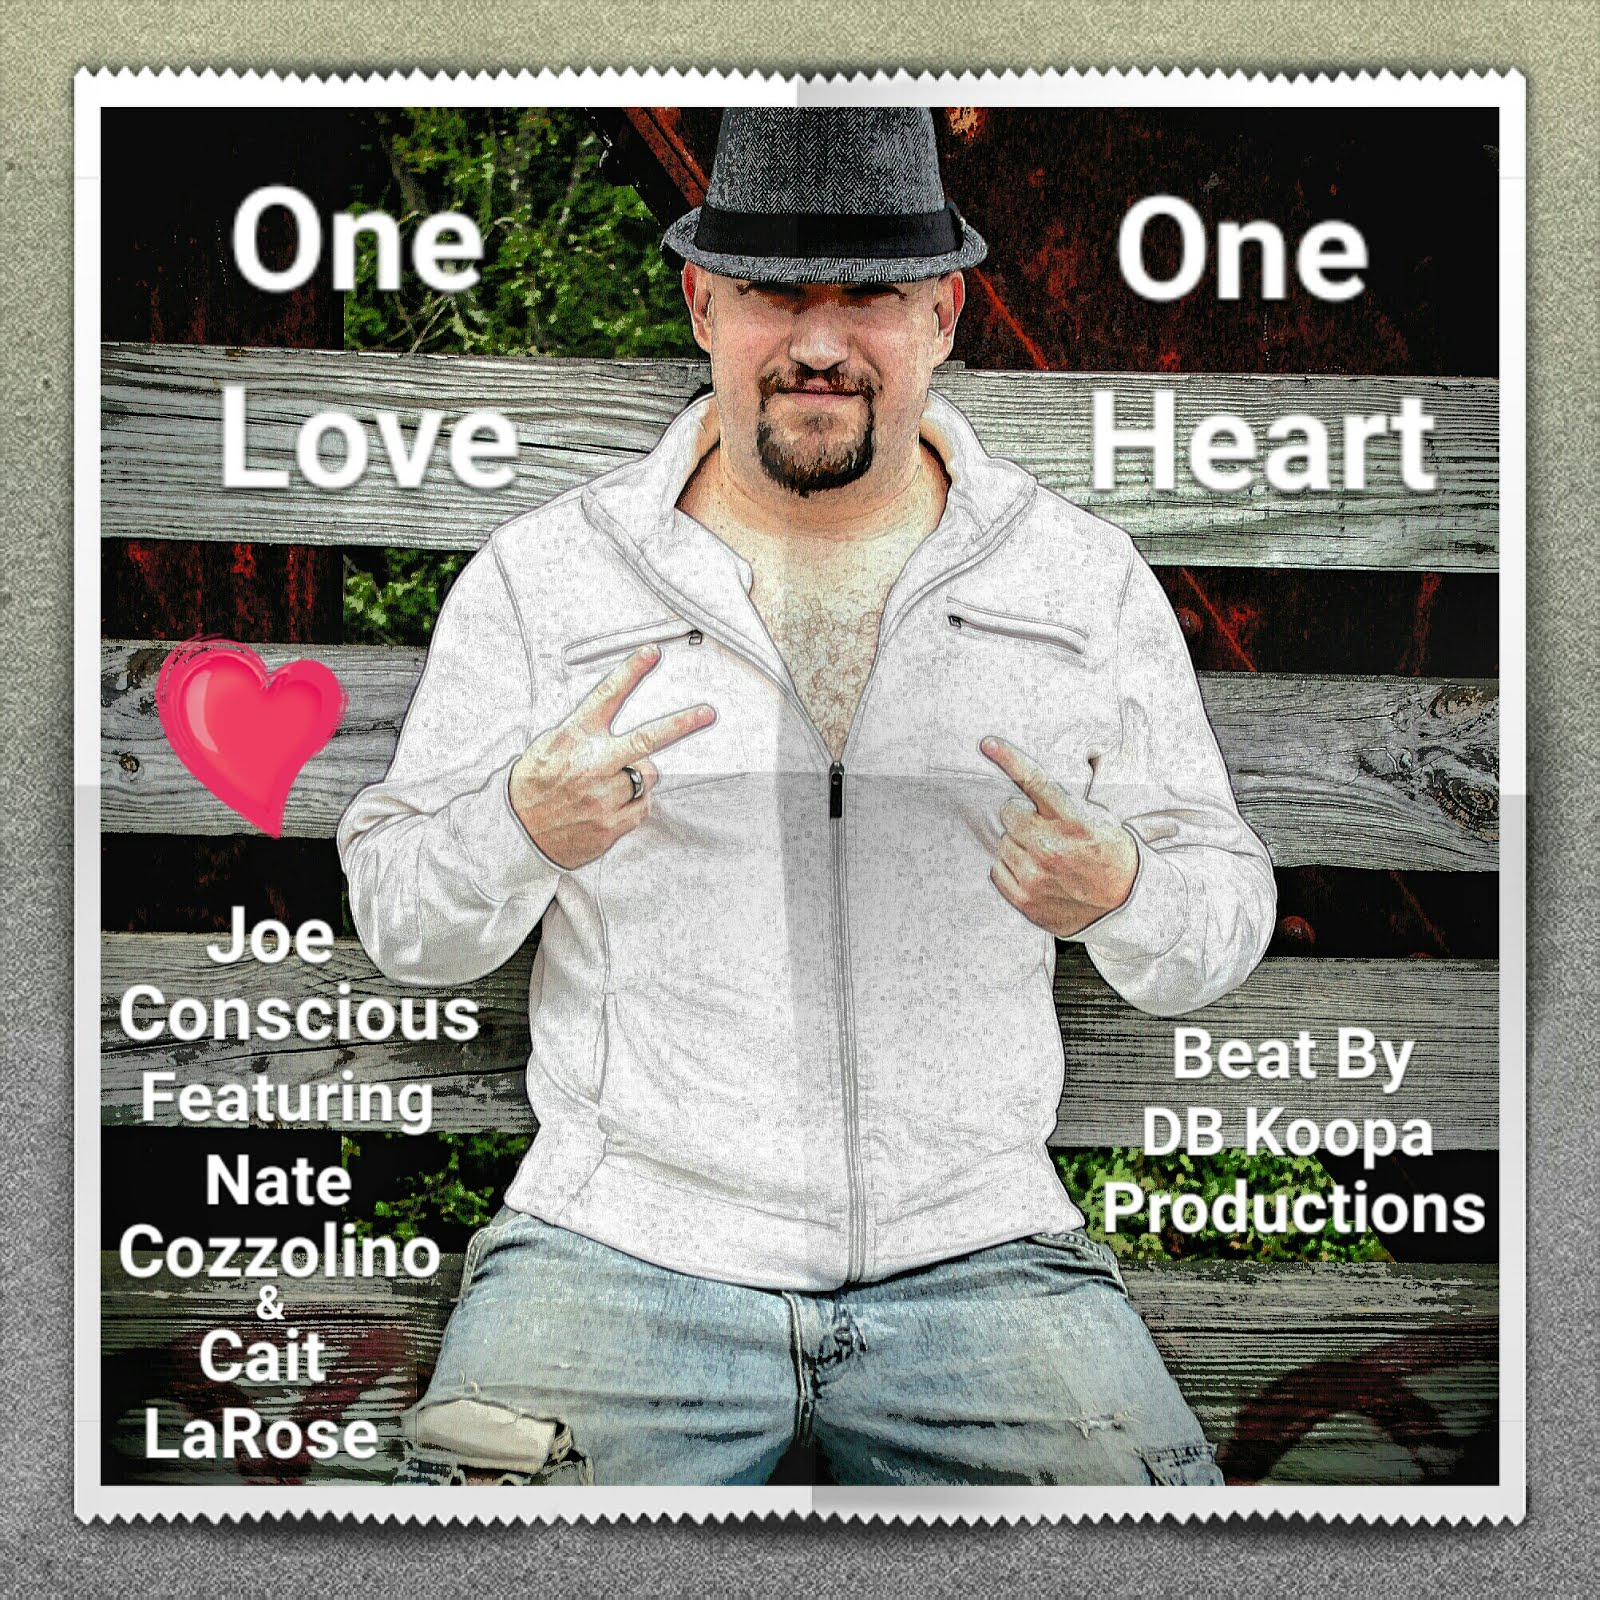 One Love One Heart (feat. Nate Cozzolino & Cait LaRose) by Joe Conscious